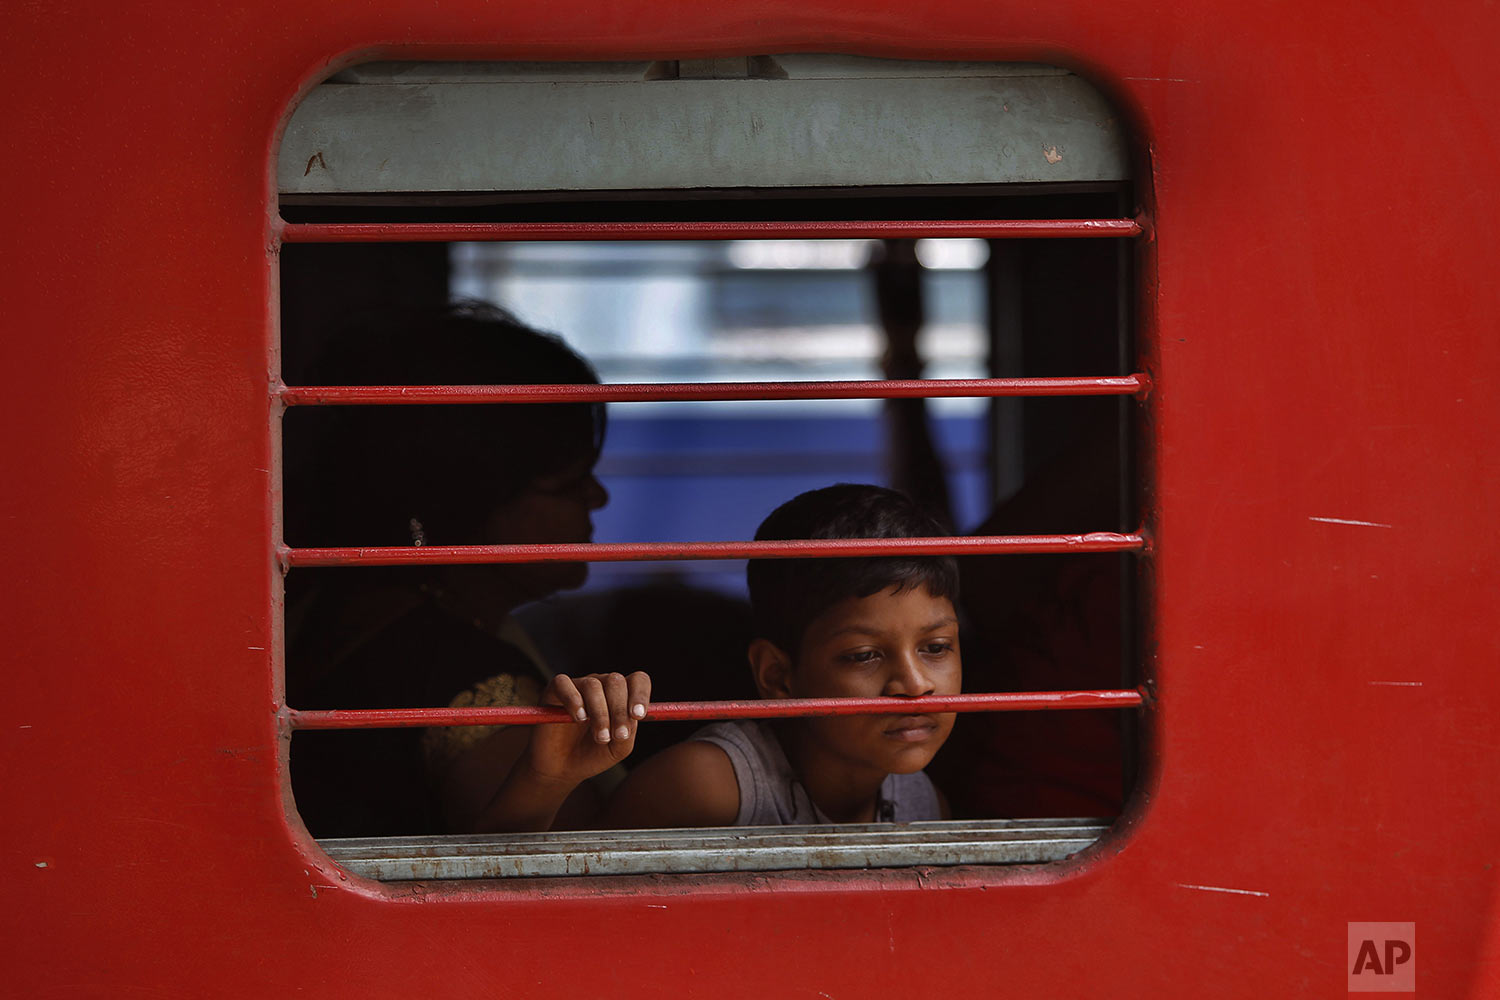 An Indian boy sits inside a train waiting to leave a railway station in Jammu, India, Sunday, Aug. 4, 2019. (AP Photo/Channi Anand)